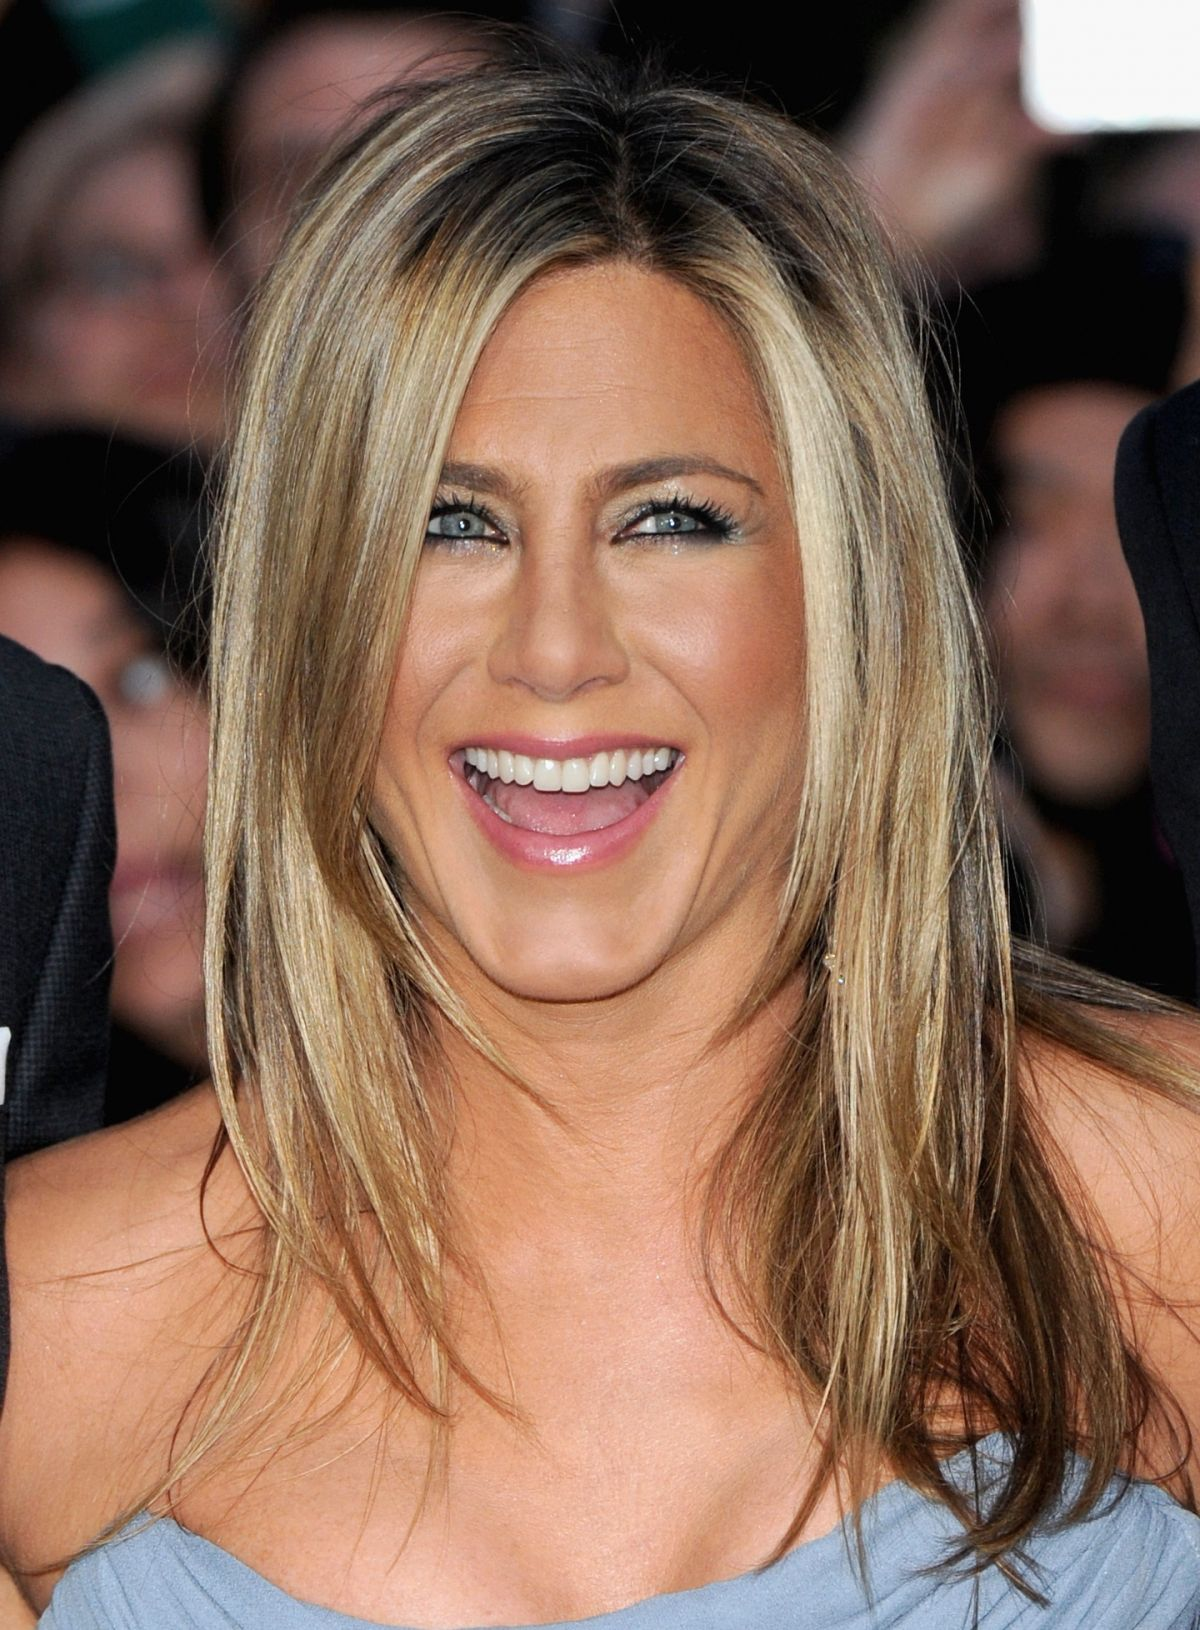 Jennifer Aniston At Life Of Crime Premiere At The 2013 TIFF In Toronto